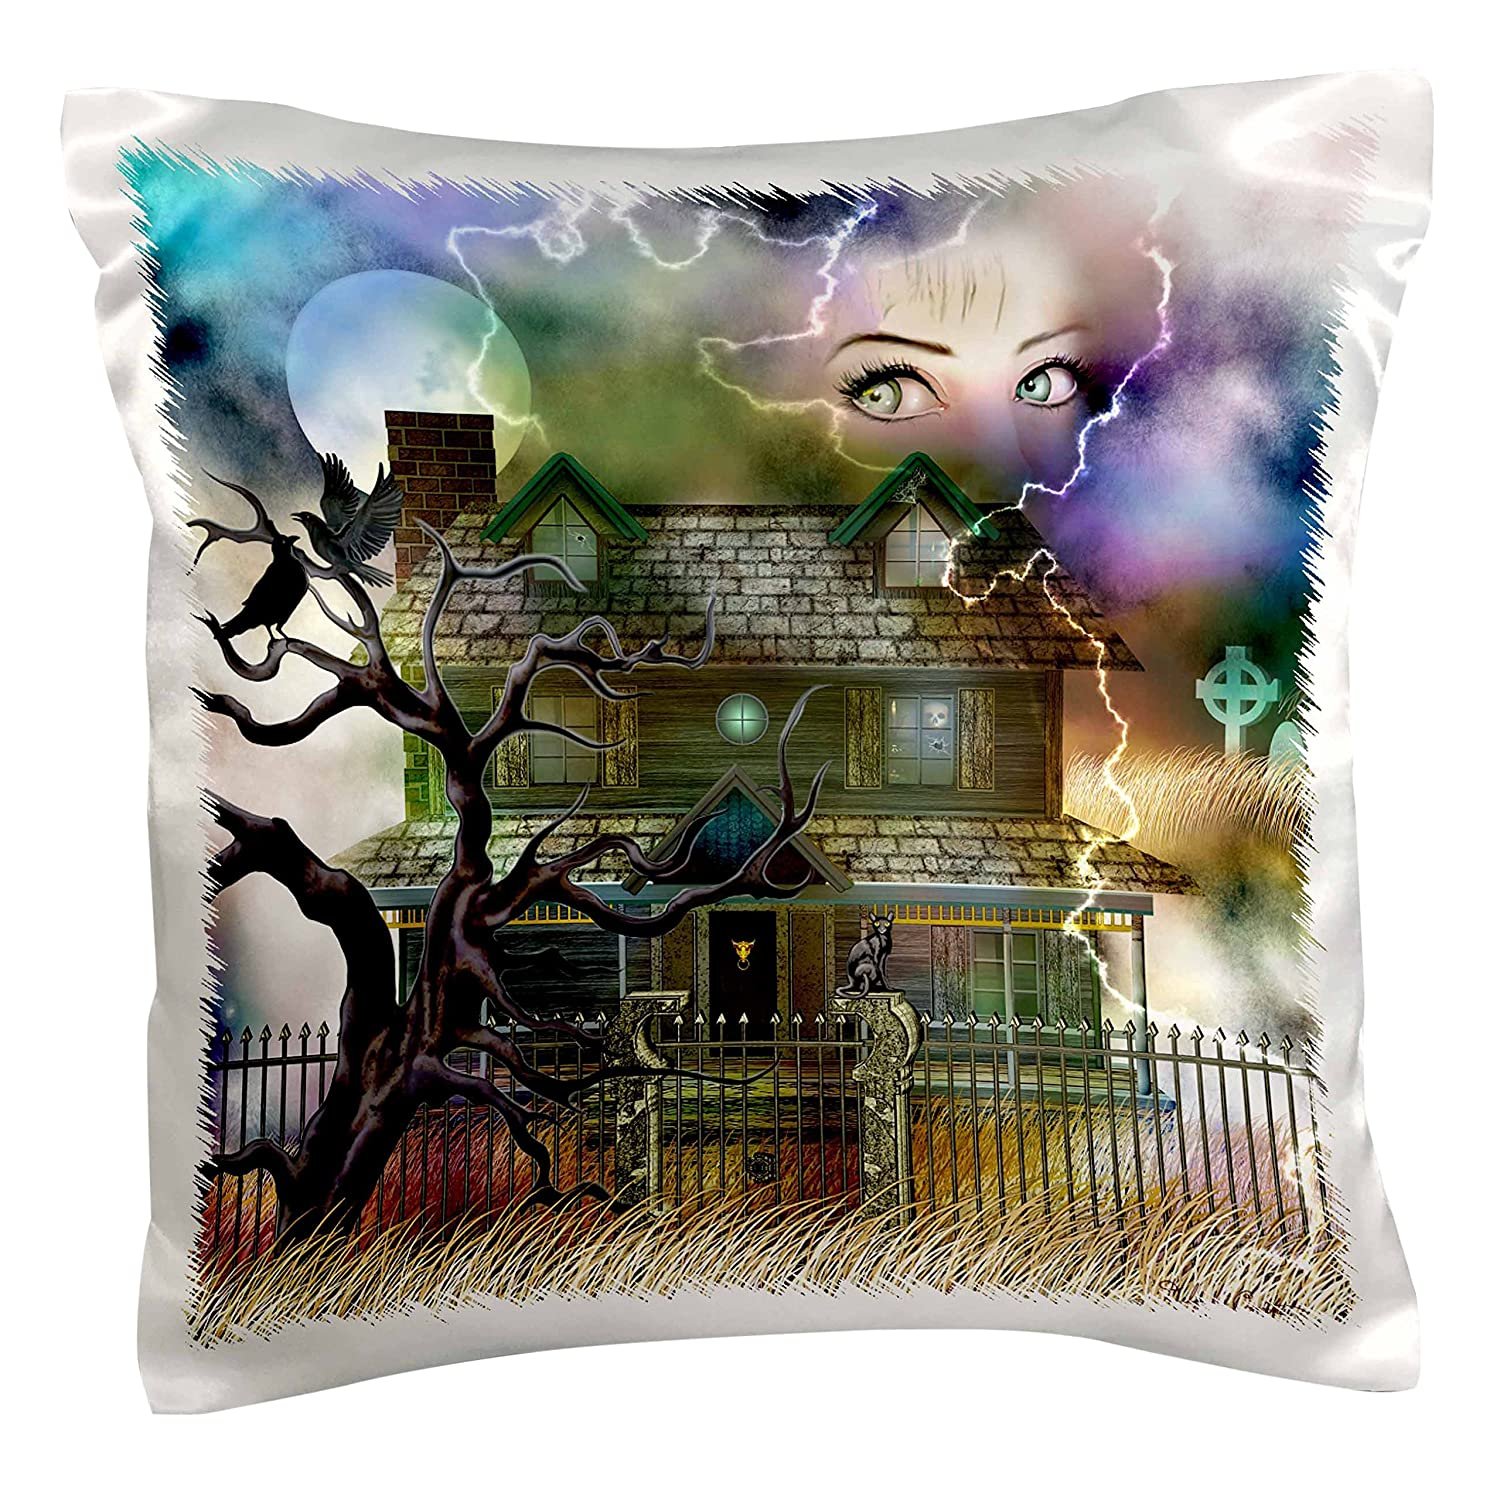 Black cat and More-Pillow Case 16 by 16 Graveyard 3dRose pc/_11652/_1 A Spooky Collage of an Old Haunted House